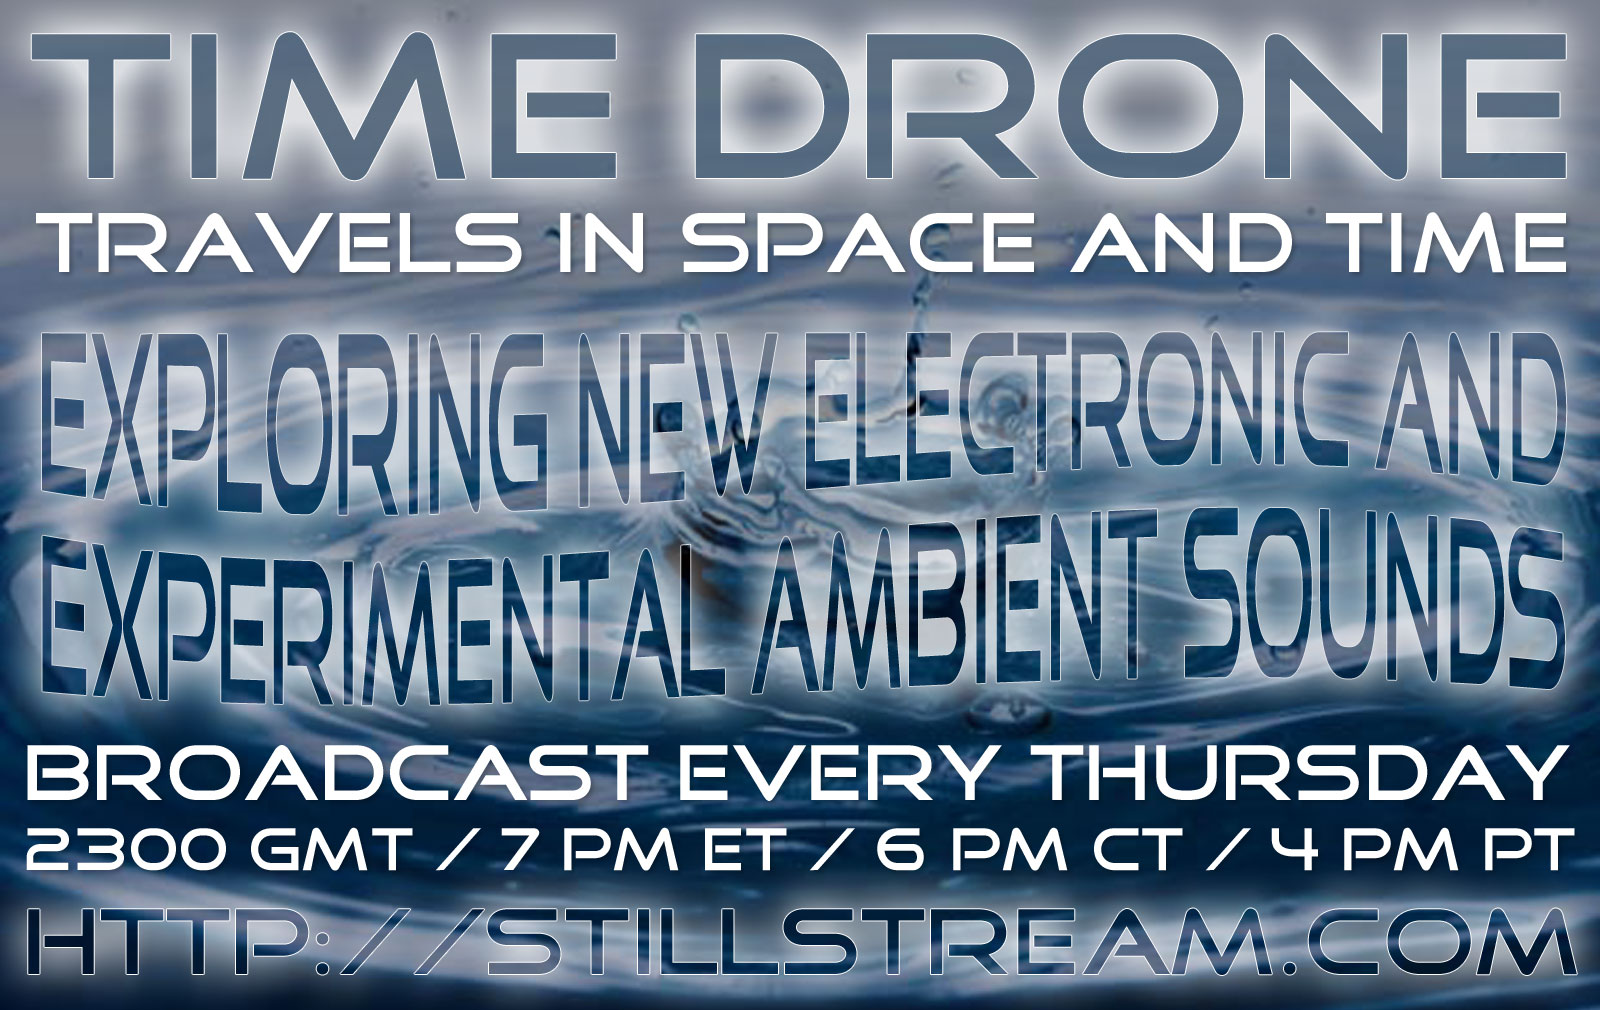 time-drone-ss-2.jpg